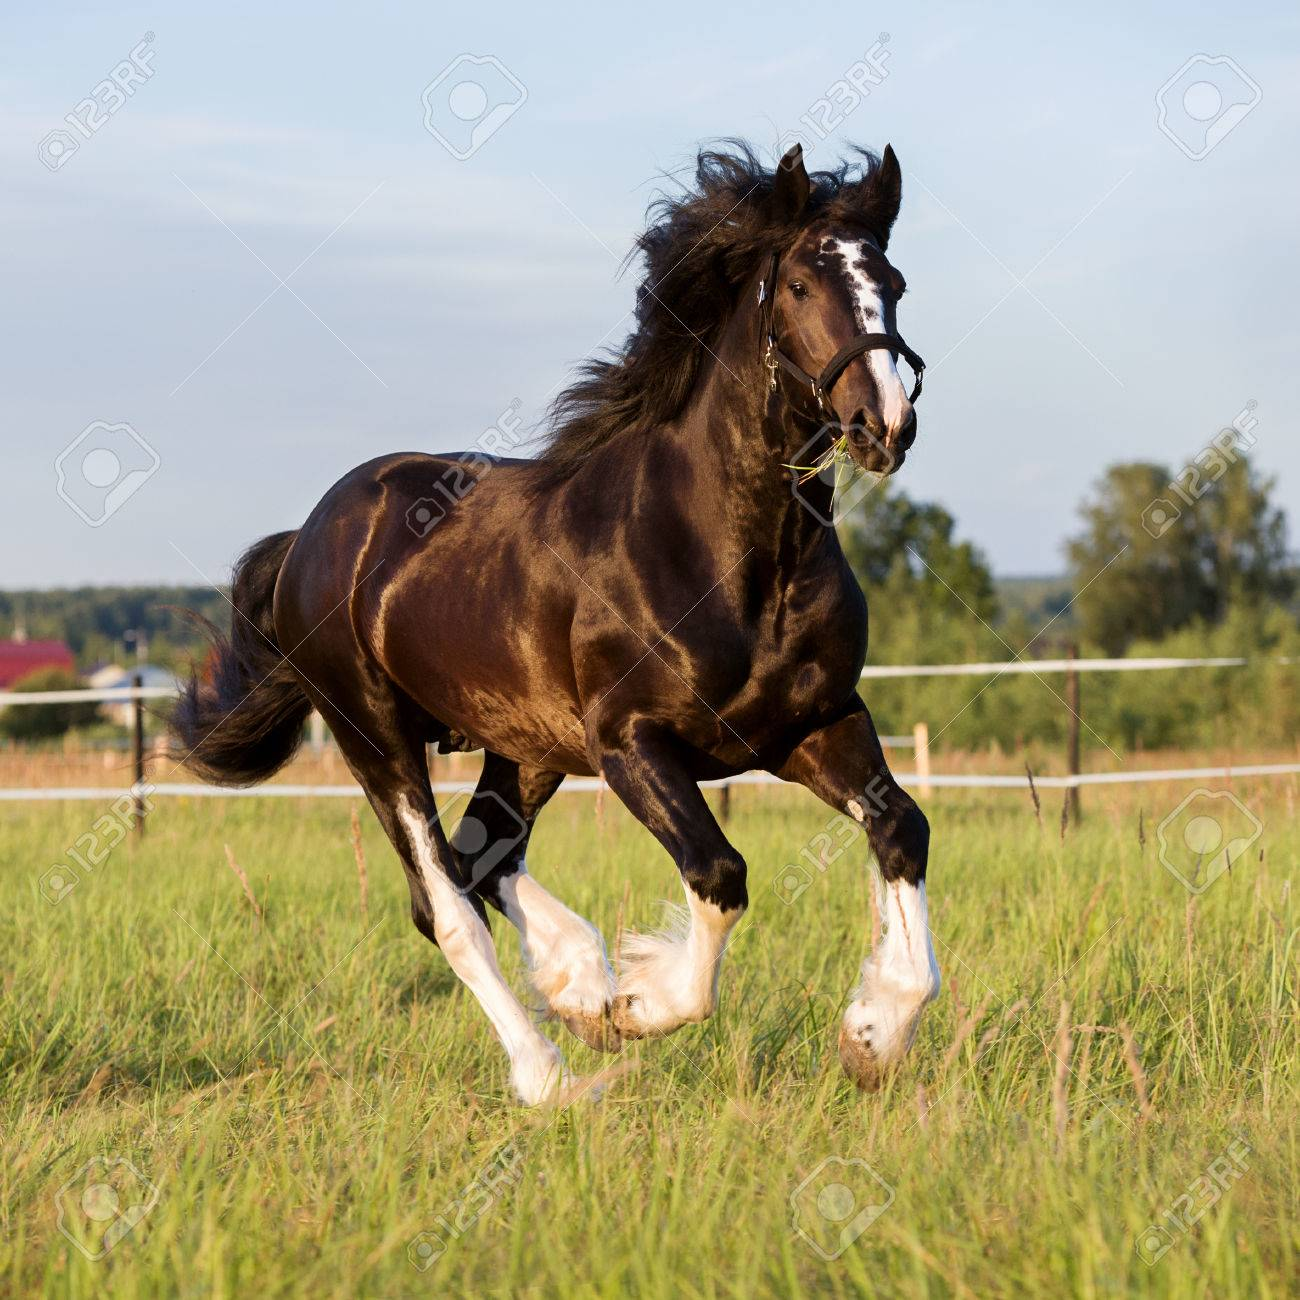 Black Vladimir Draft Horse Runs Gallop On The Pasture Stock Photo Picture And Royalty Free Image Image 44872172